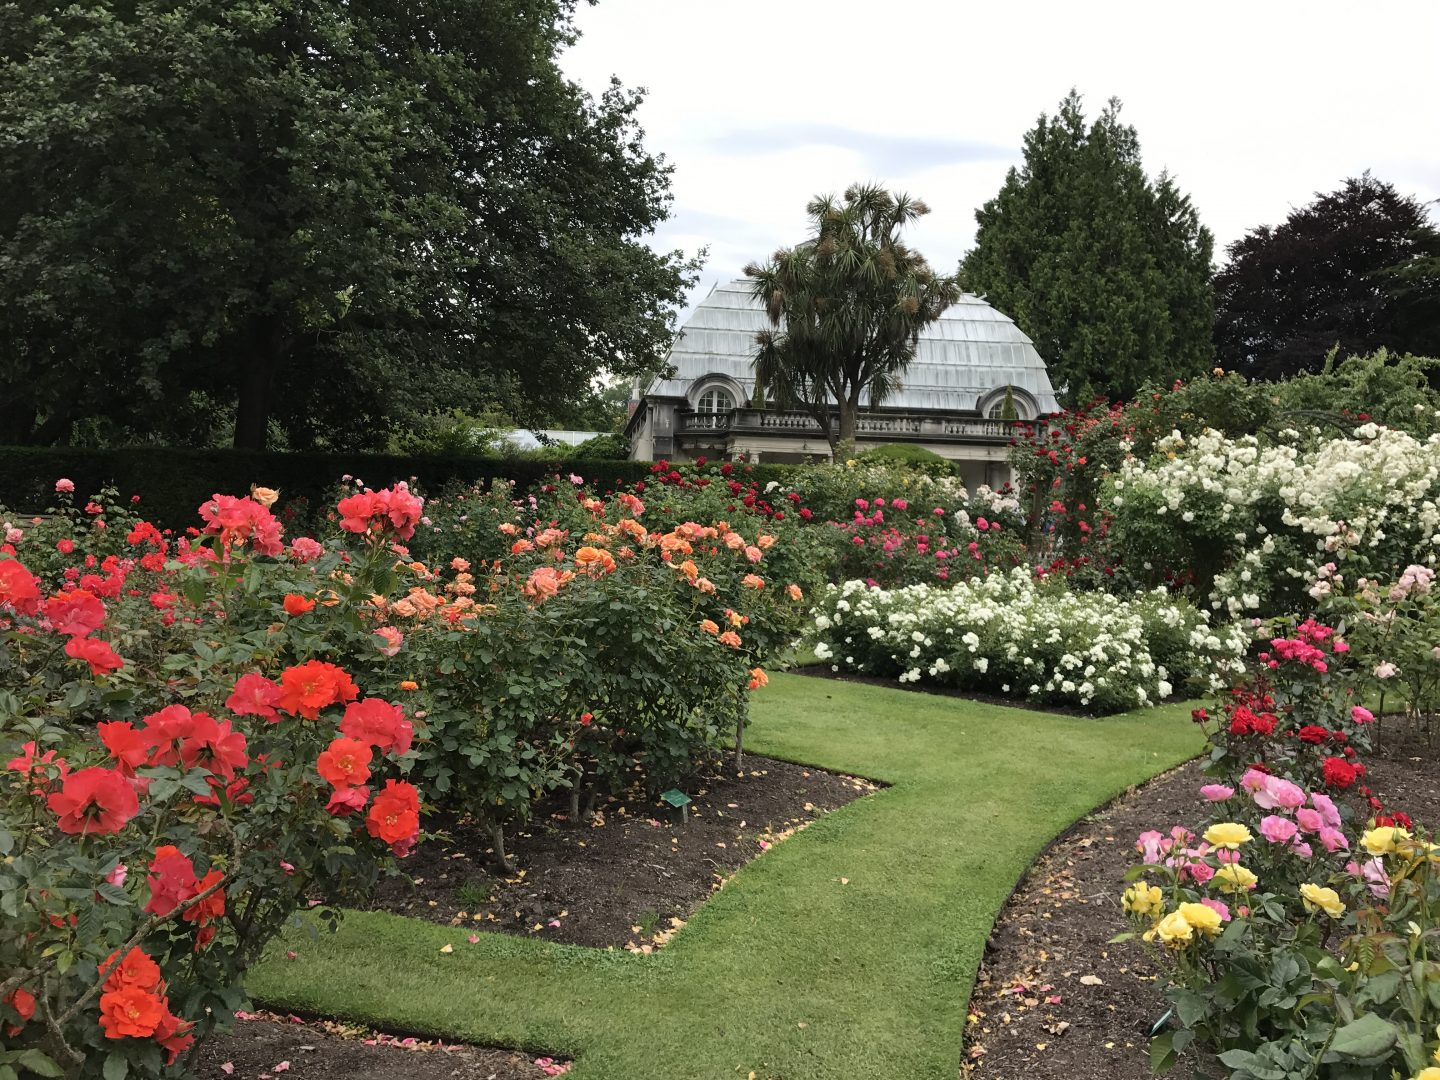 The Christchurch Botanic Gardens